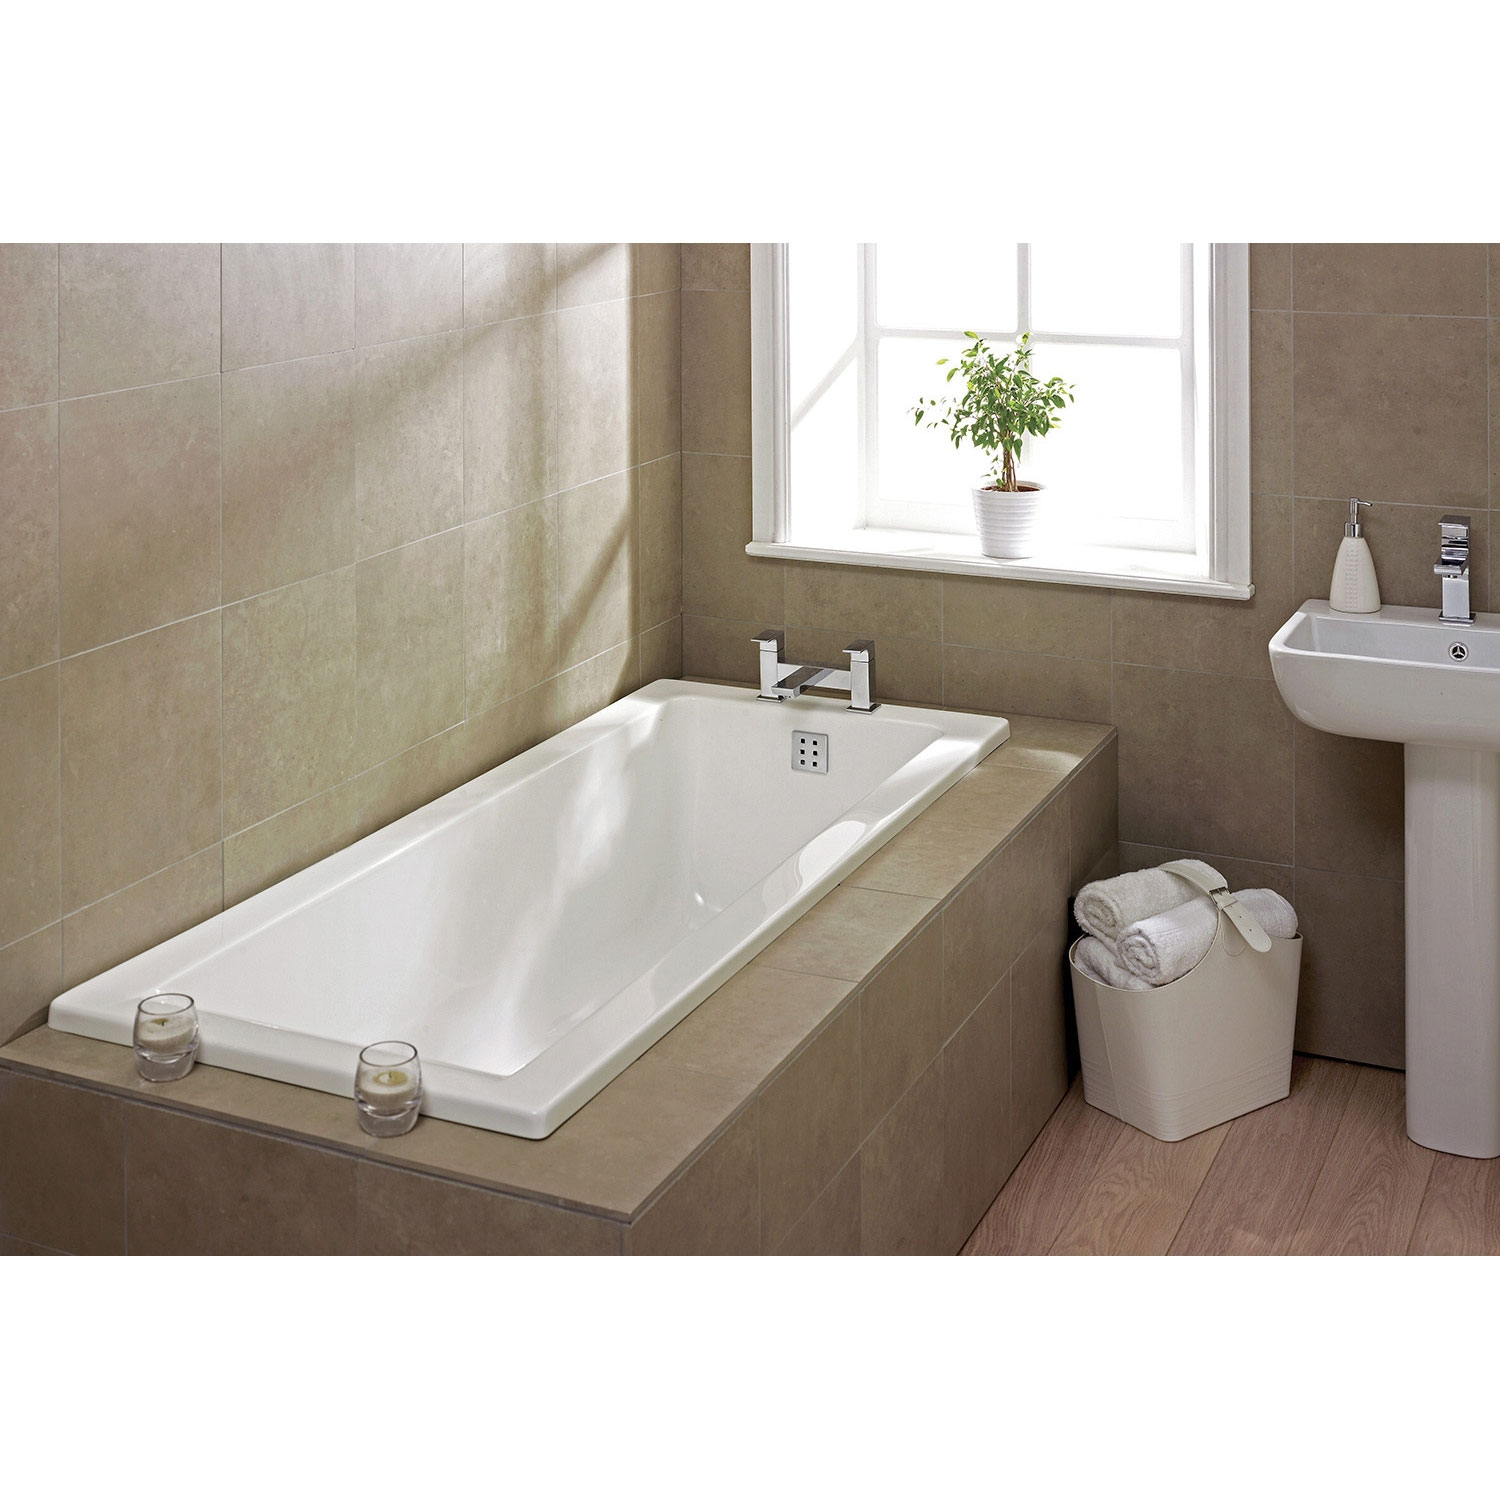 Verona Atlanta Single Ended Rectangular Bath 1600mm x 700mm - 0 Tap Hole